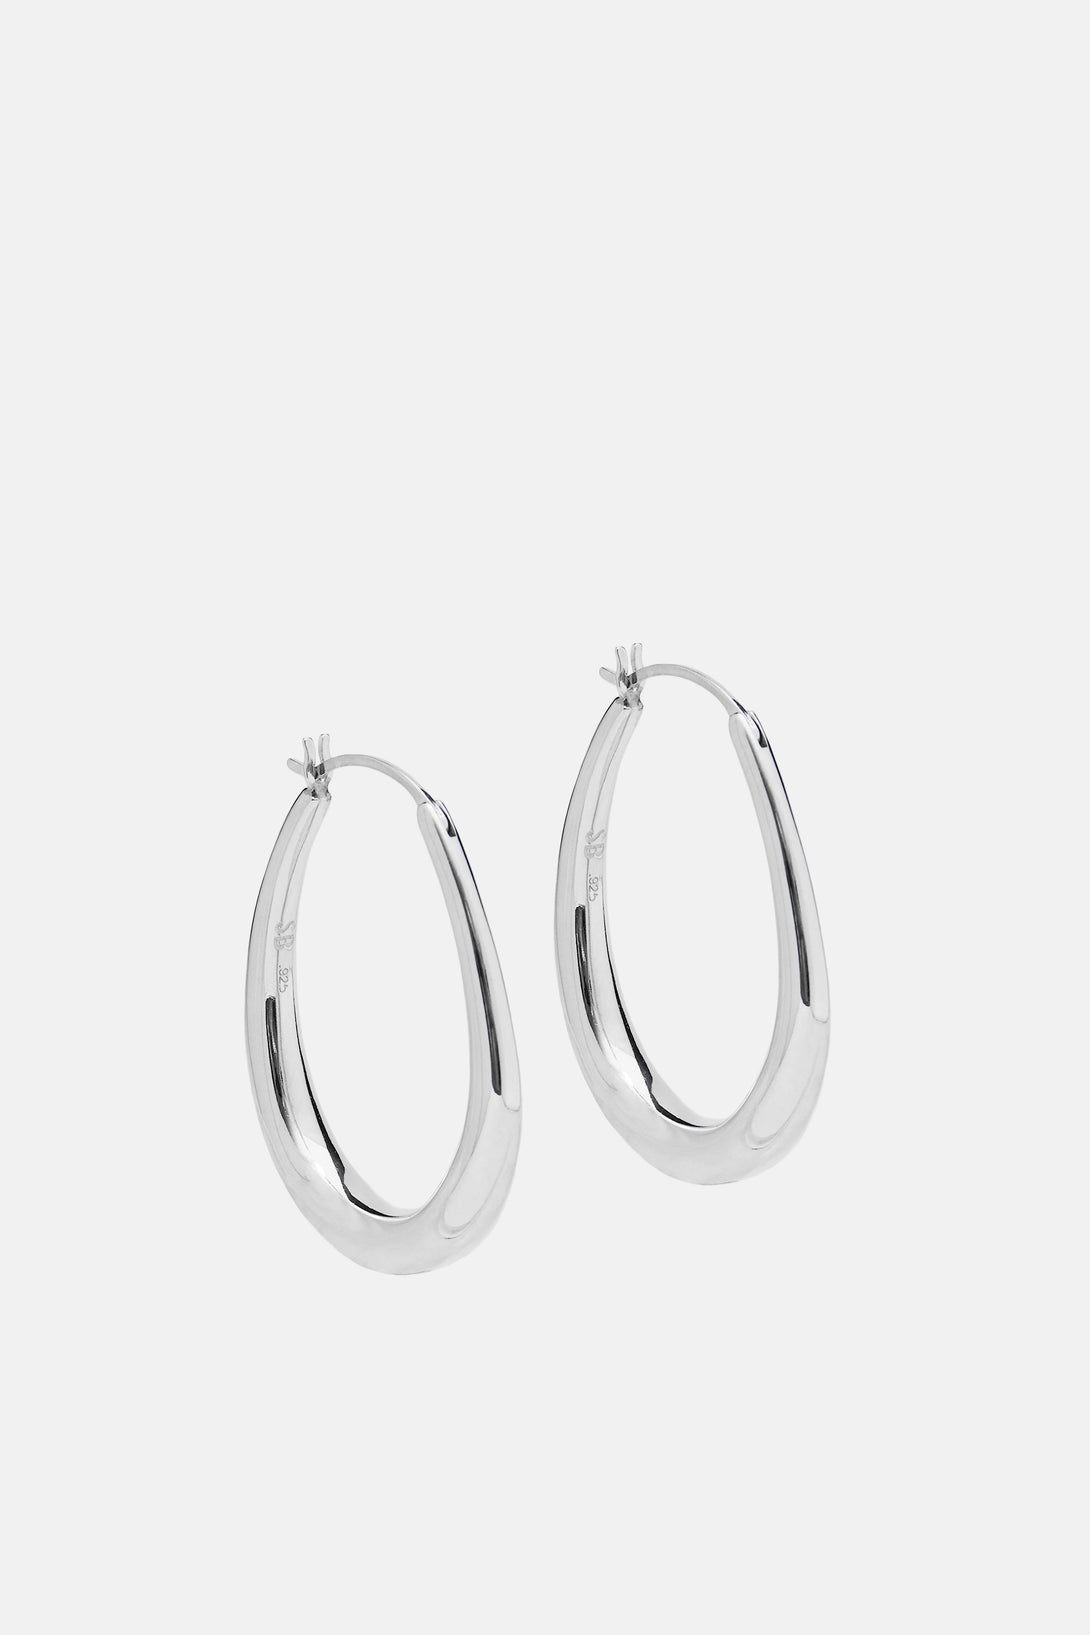 Small Egg Hoop Earrings - Sterling Silver